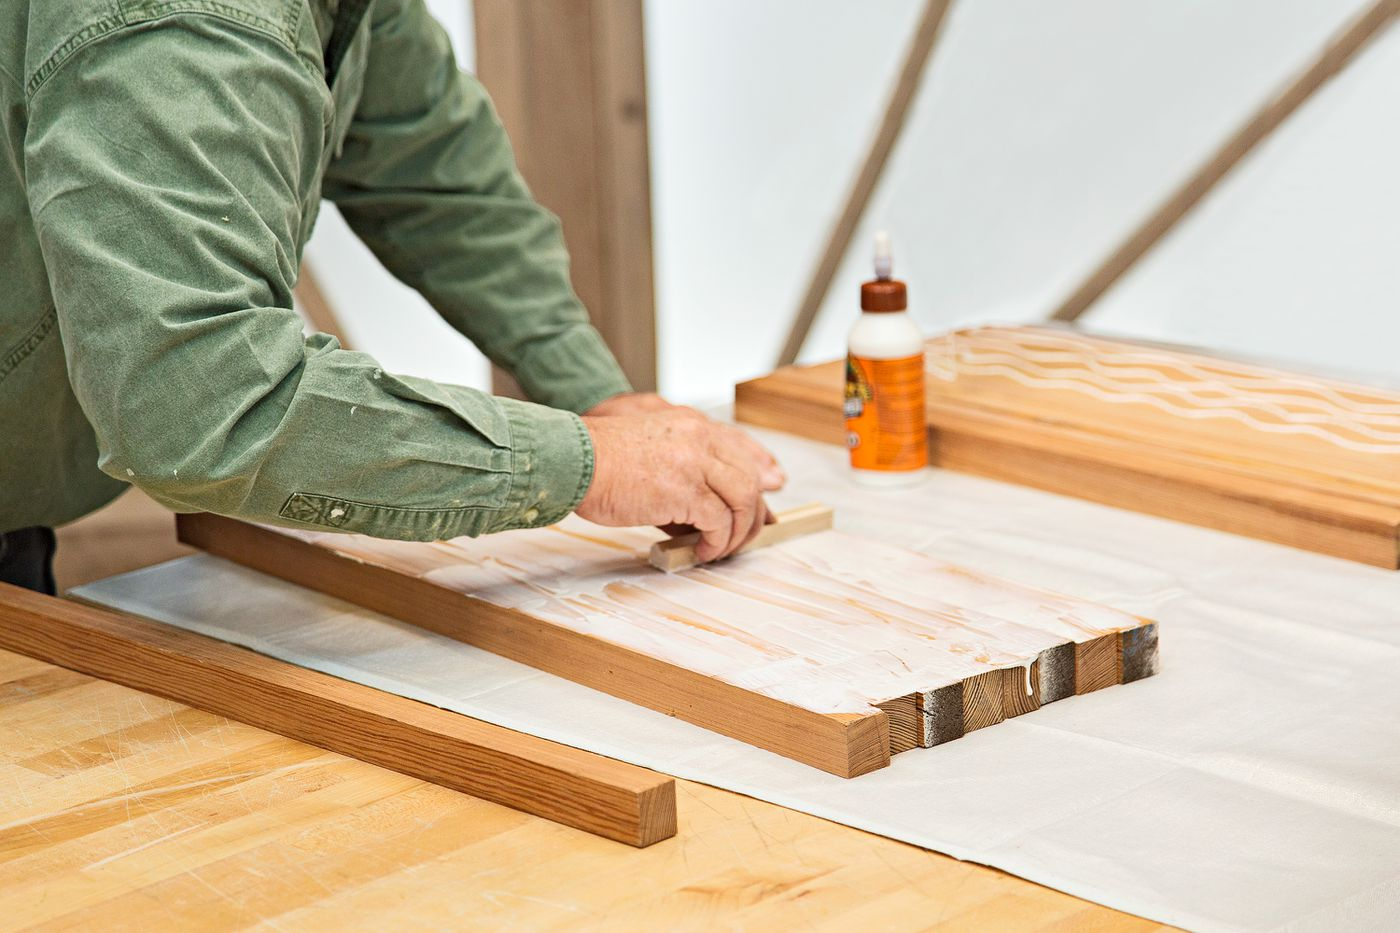 How To Make An End Grain Cutting Board With Salvaged Wood This Old House